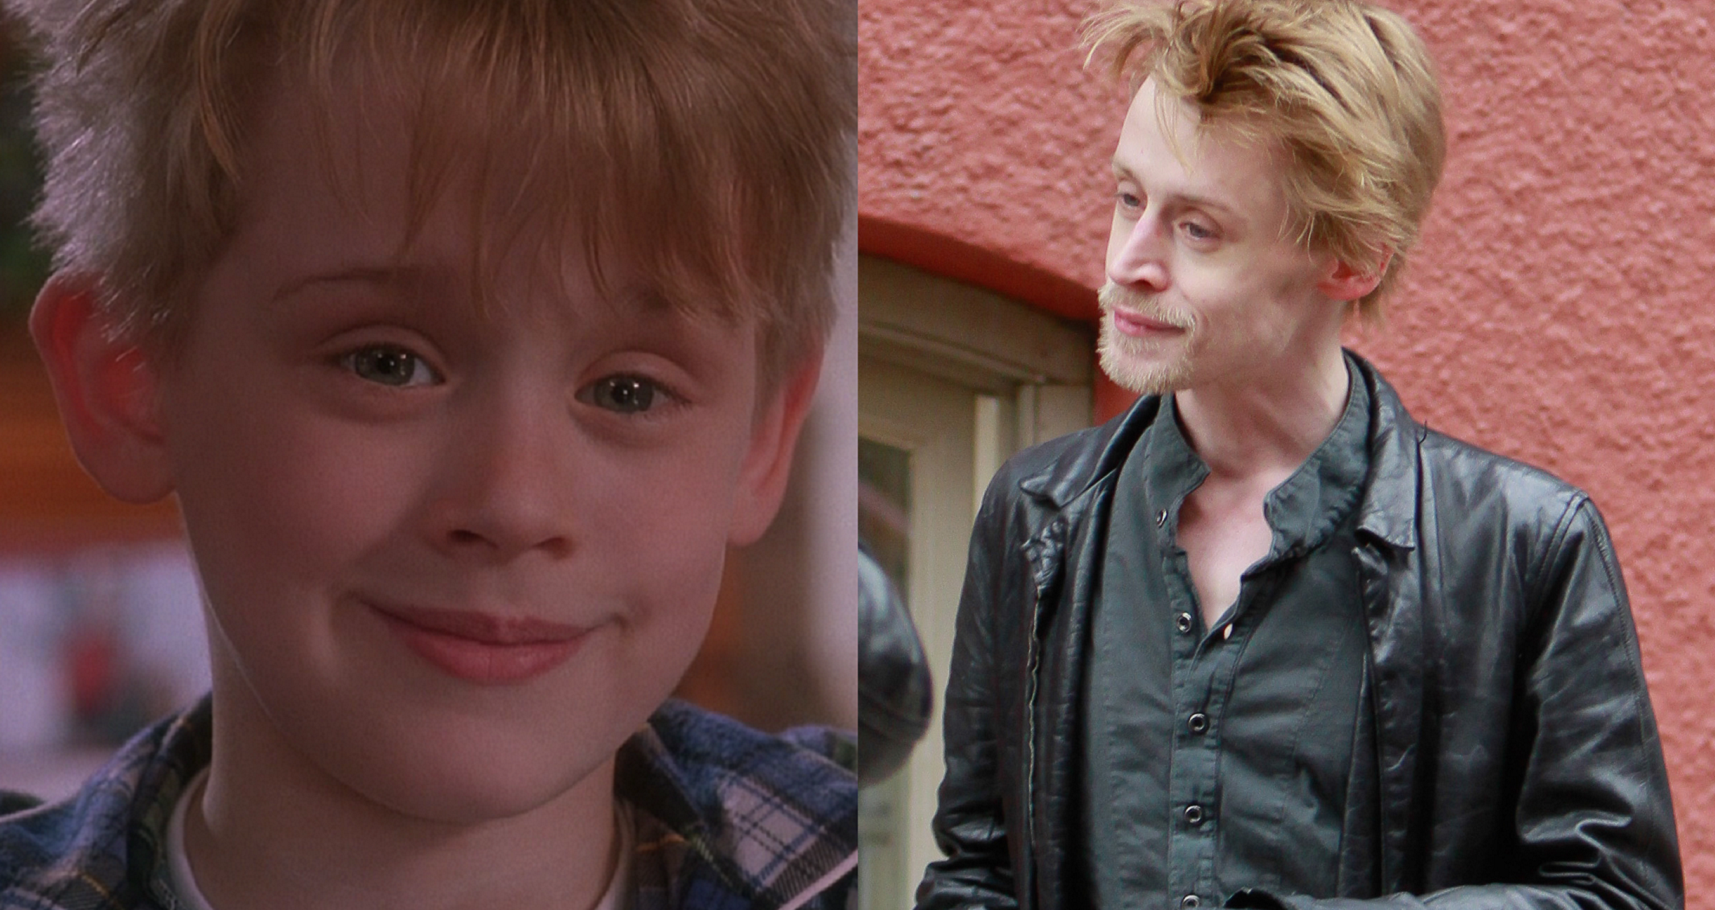 10 Cute Child Actors Who Didn't Age Gracefully